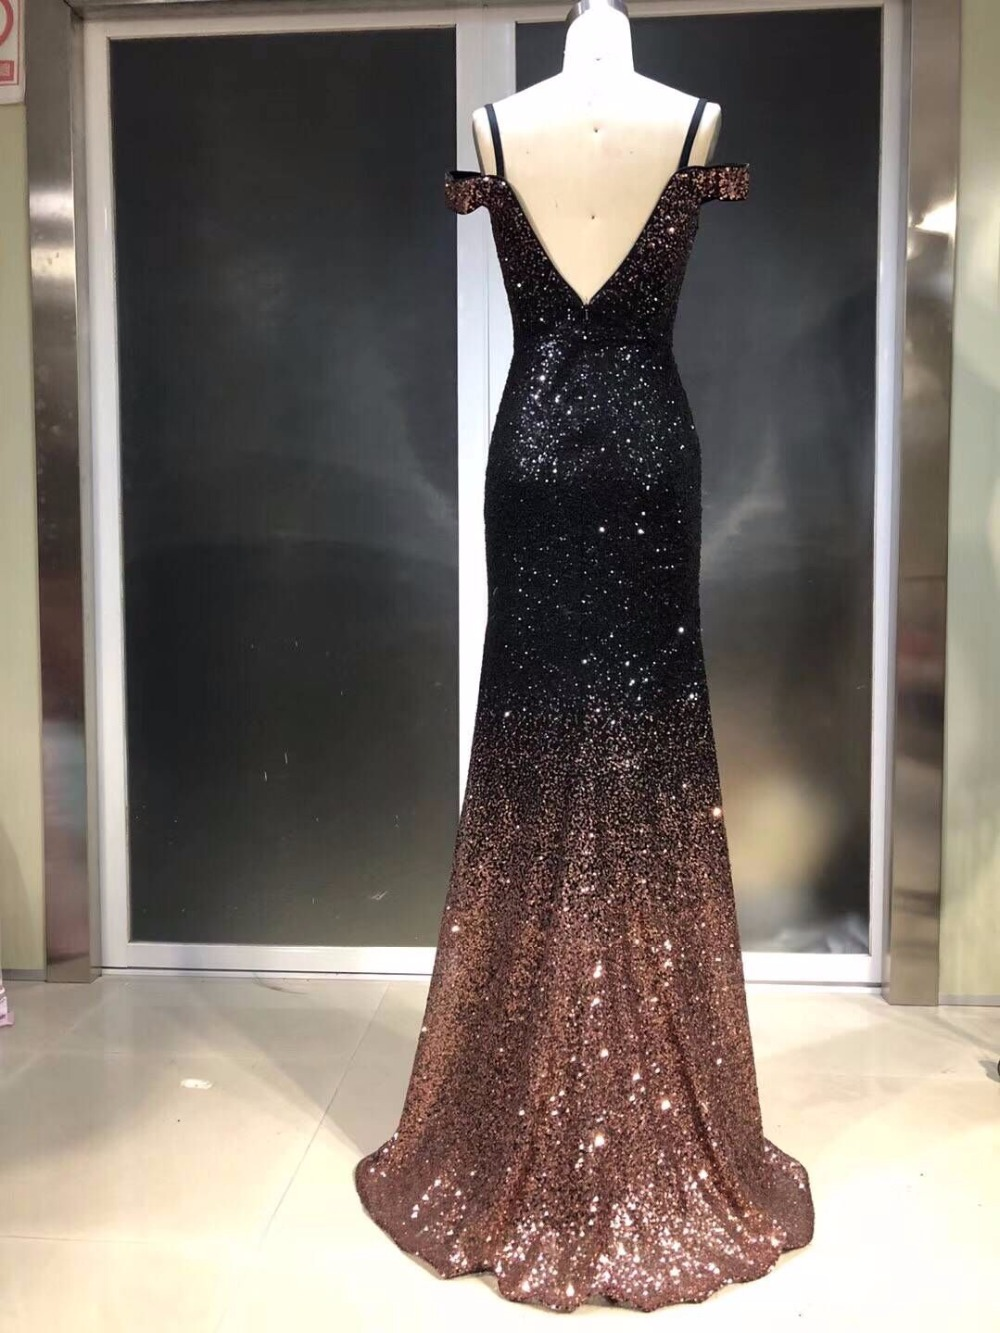 Summer Sexy Mermaid Prom Dresses Short Sleeve design Evening Dress Sequins New Design Amazing Party gown beading Evening gown - 6